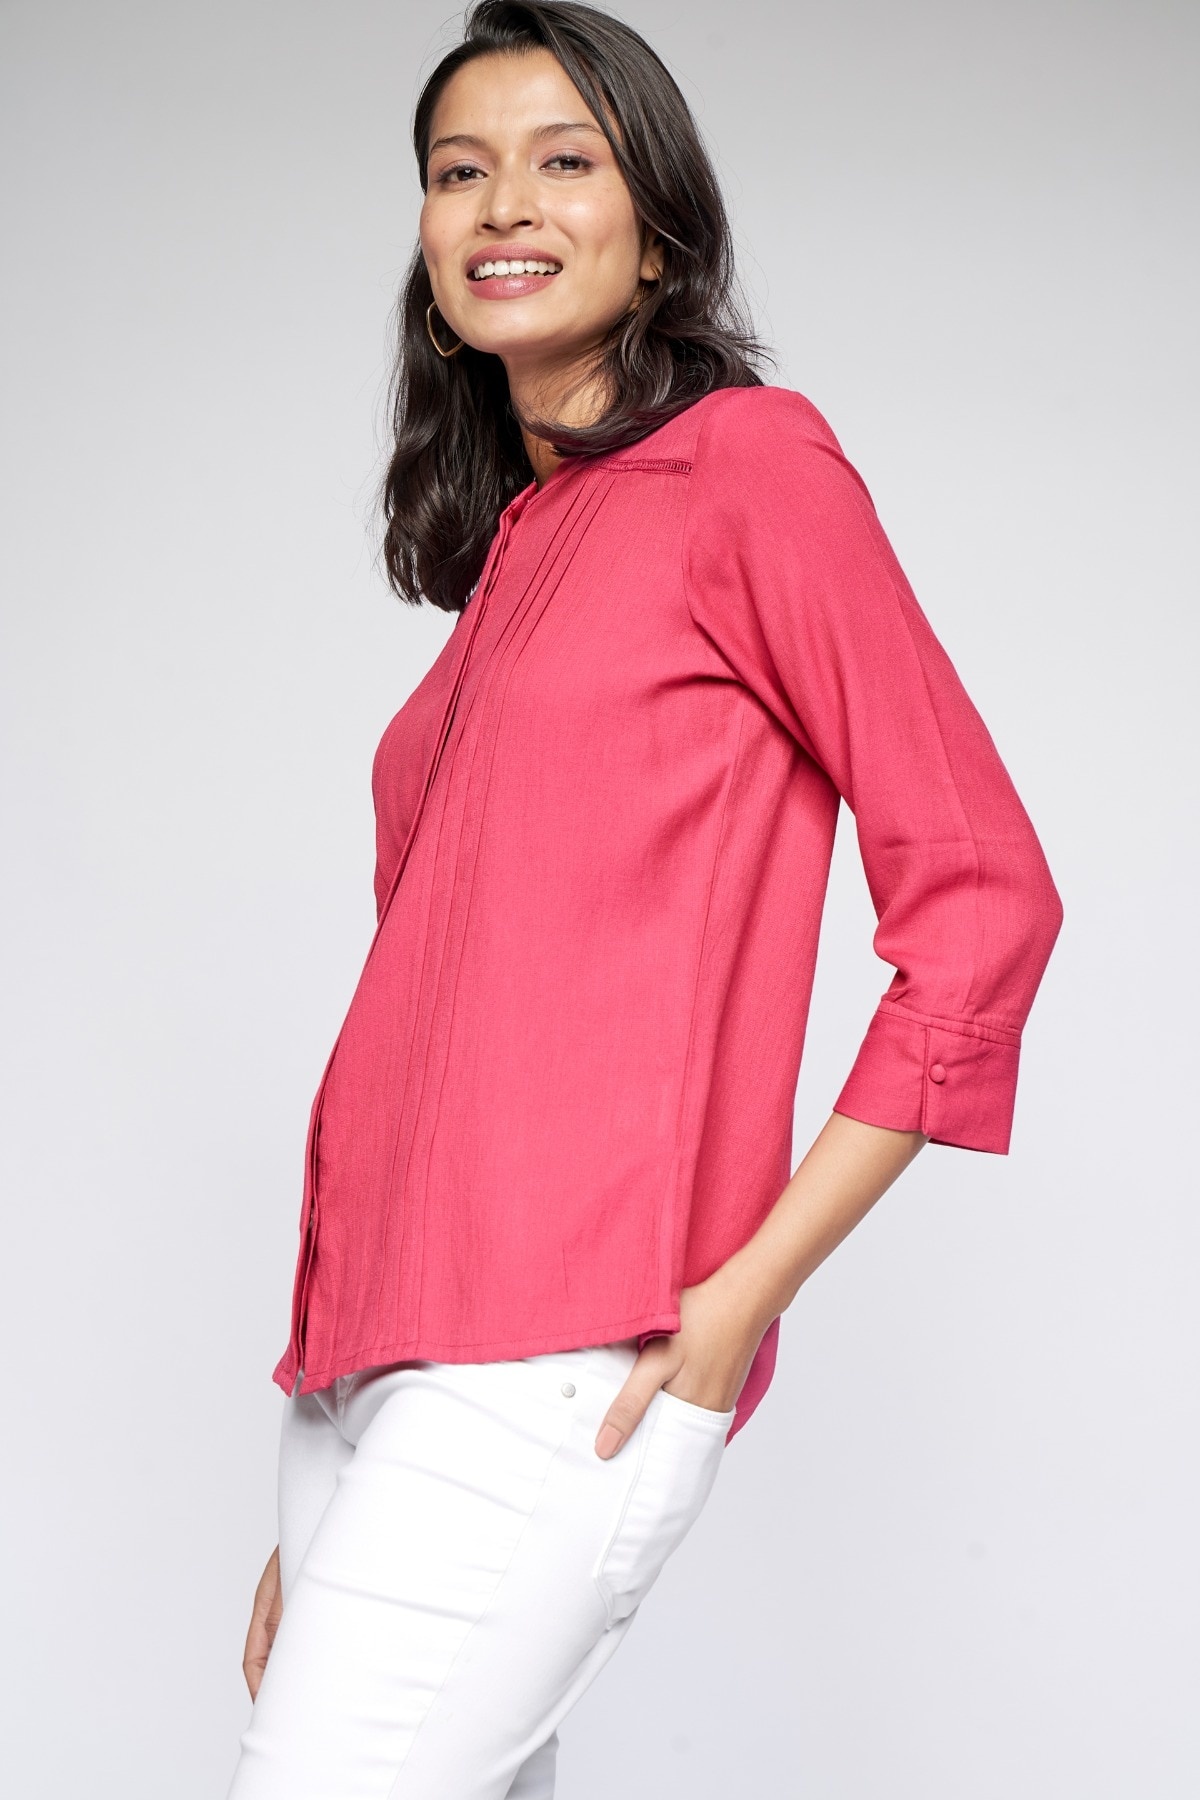 AND | Dark Pink Solid Straight Top